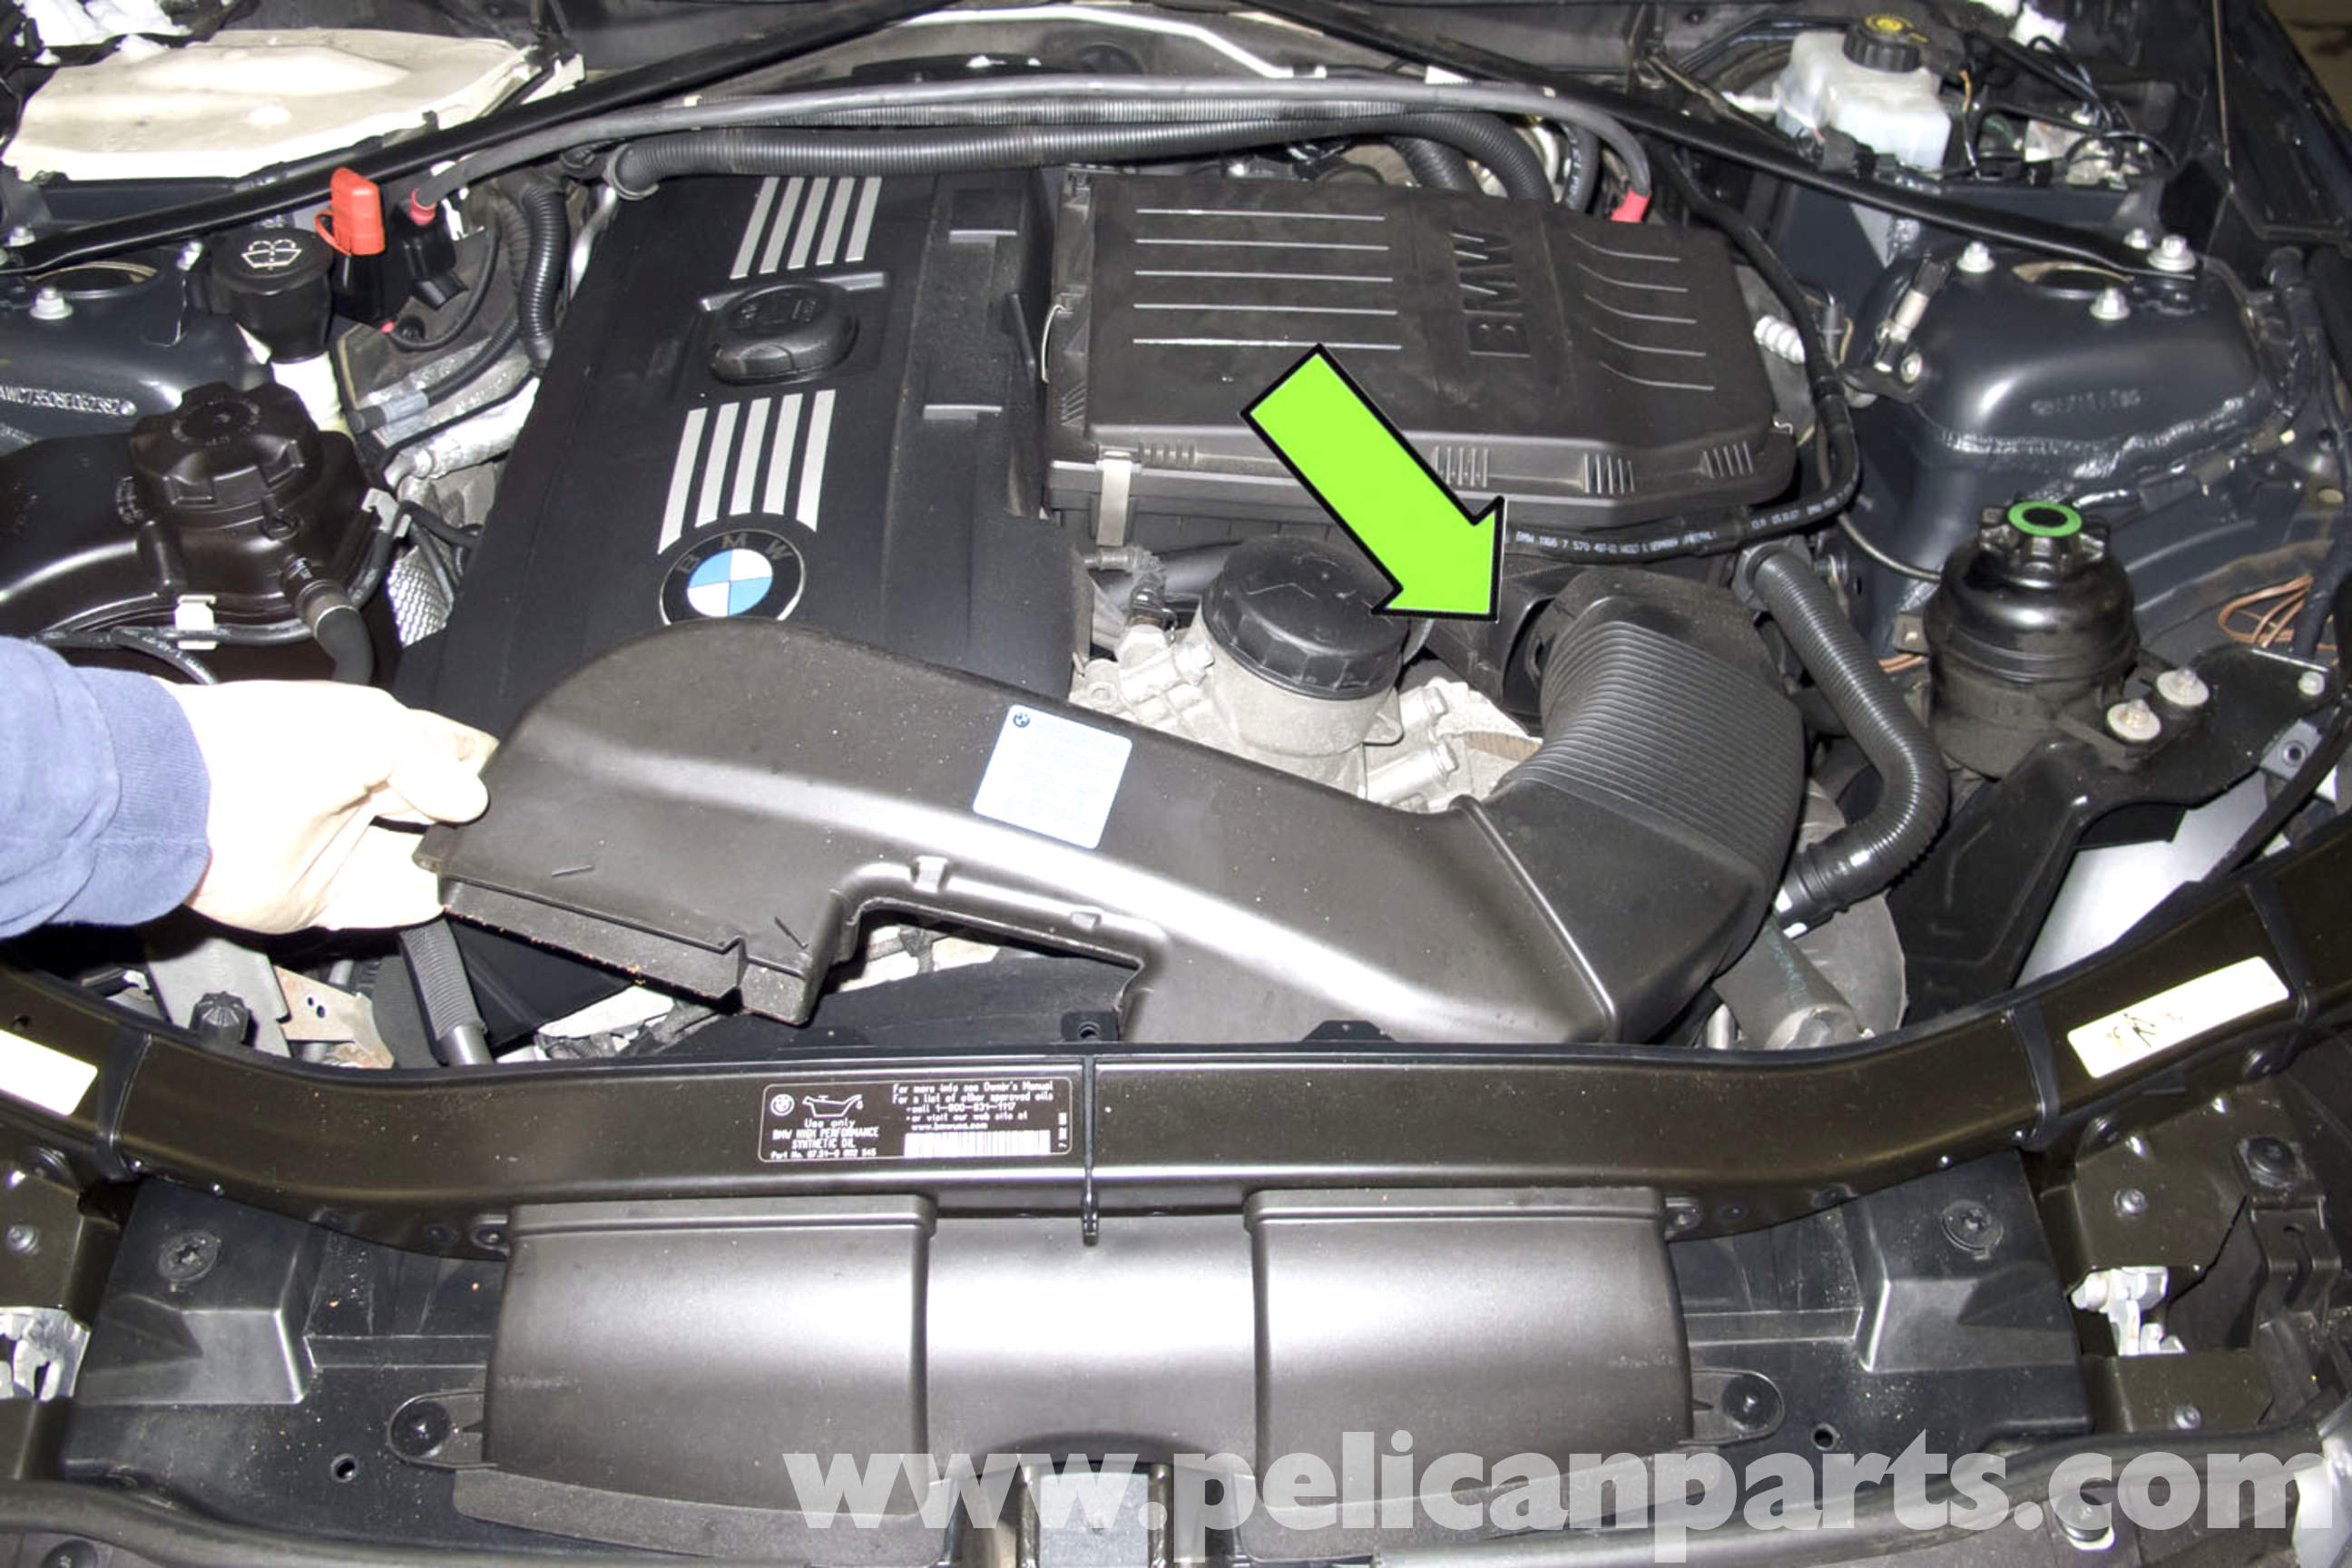 Bmw E90 Alternator Replacement E91 E92 E93 Pelican Parts Diy Maintenance Article